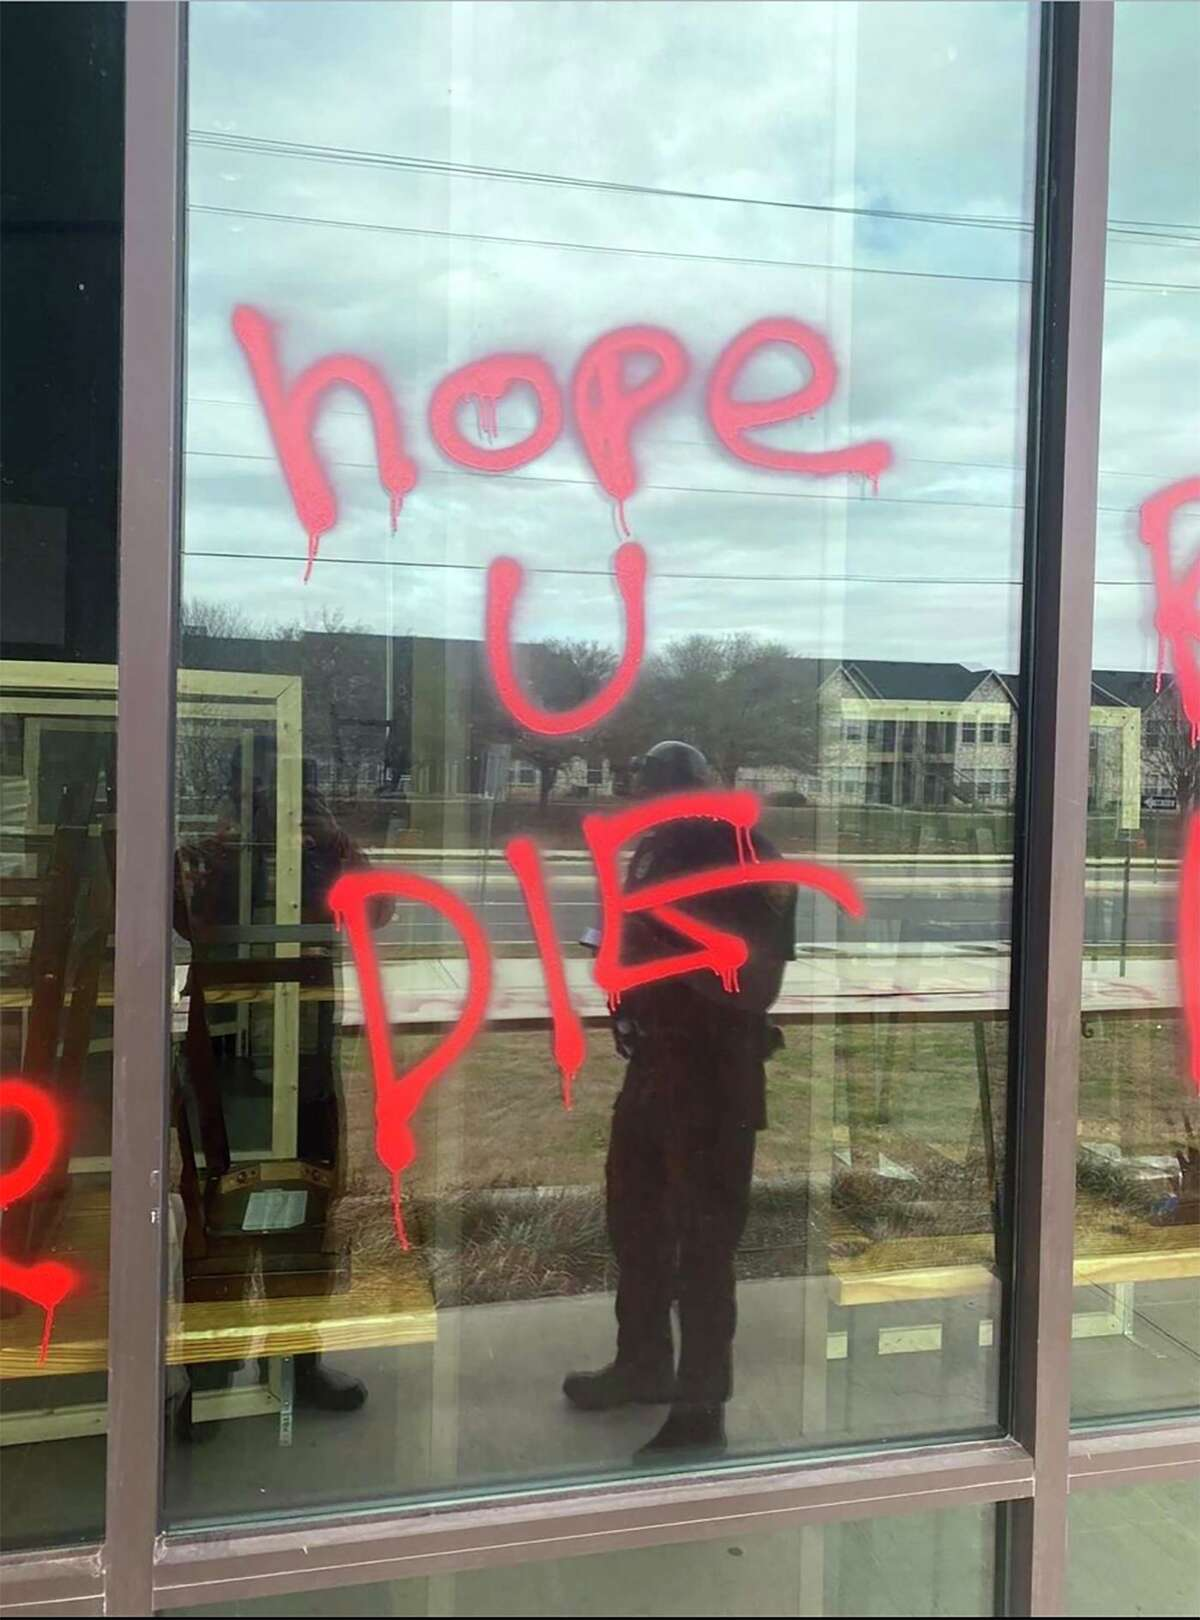 Noodle Tree, an Asian-owned restaurant on UTSA Boulevard in San Antonio, was spray painted with racial epithets on Sunday after the owner spoke out on CNN against Gov. Greg Abbott's rollback of the statewide mask mandate.